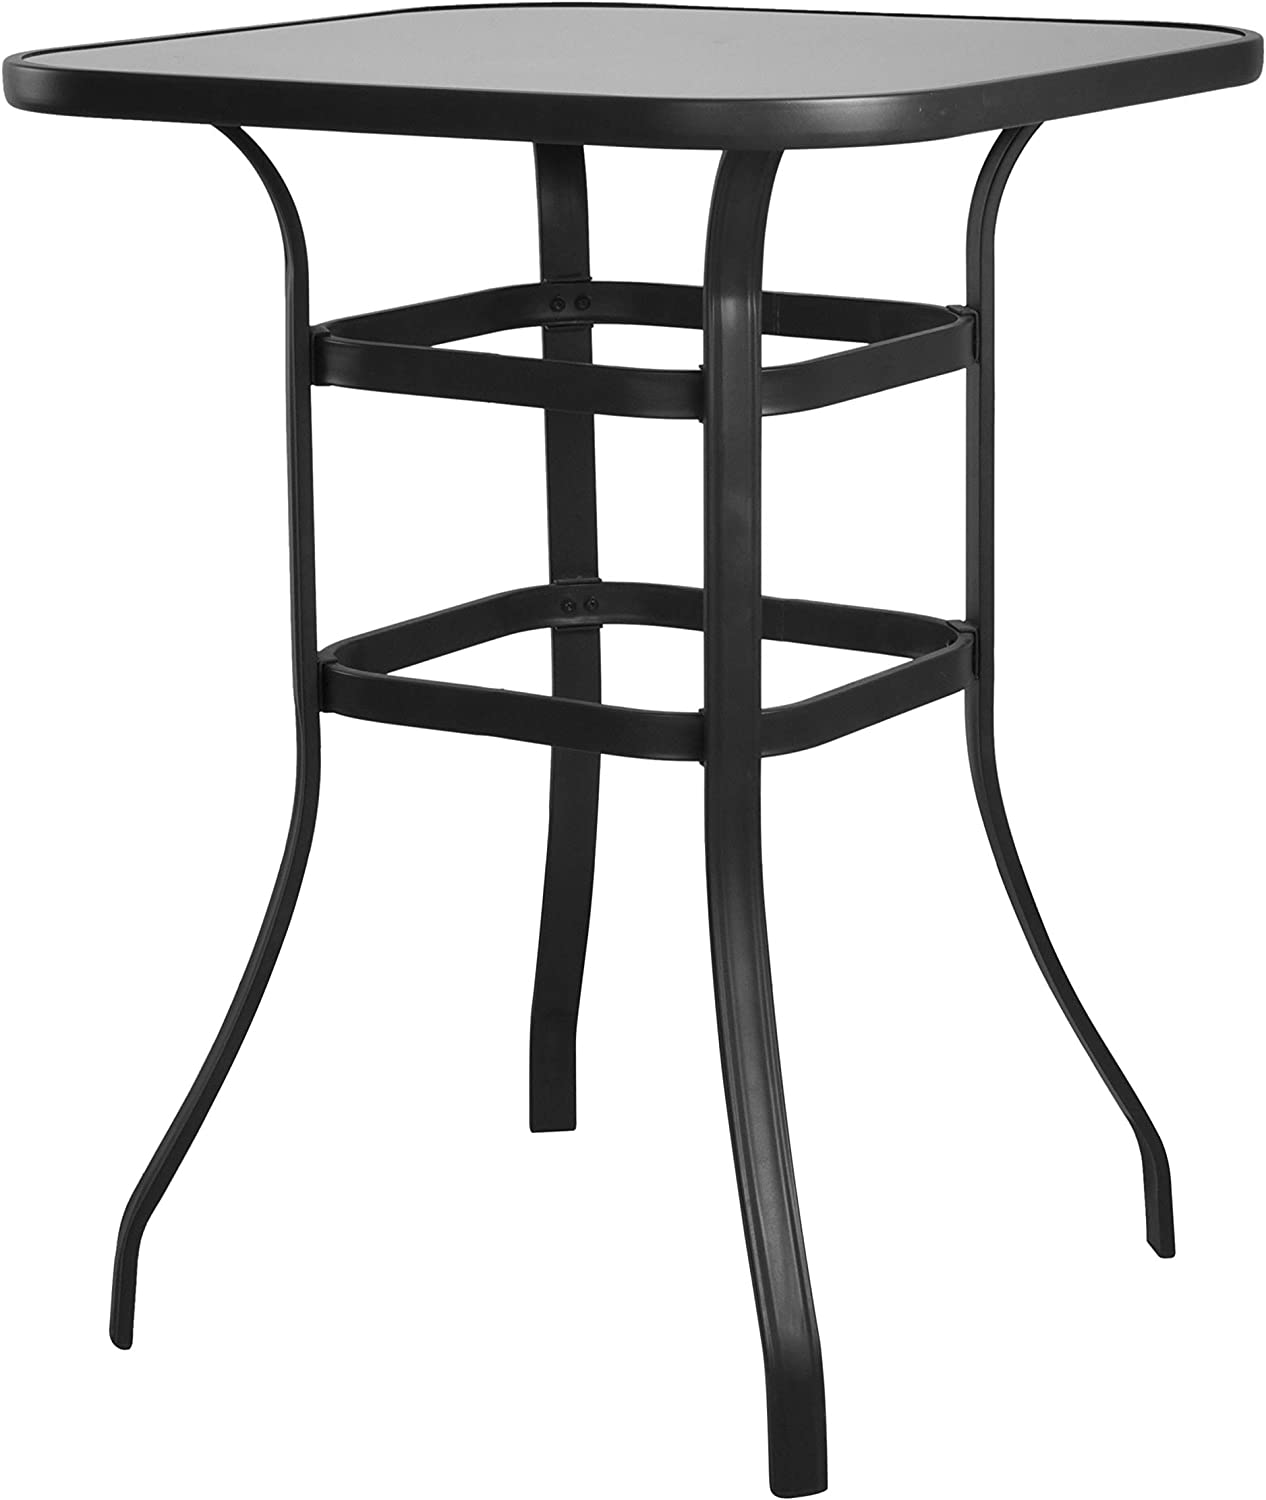 EMERIT Bistro Bar Table Outdoor High Top Table